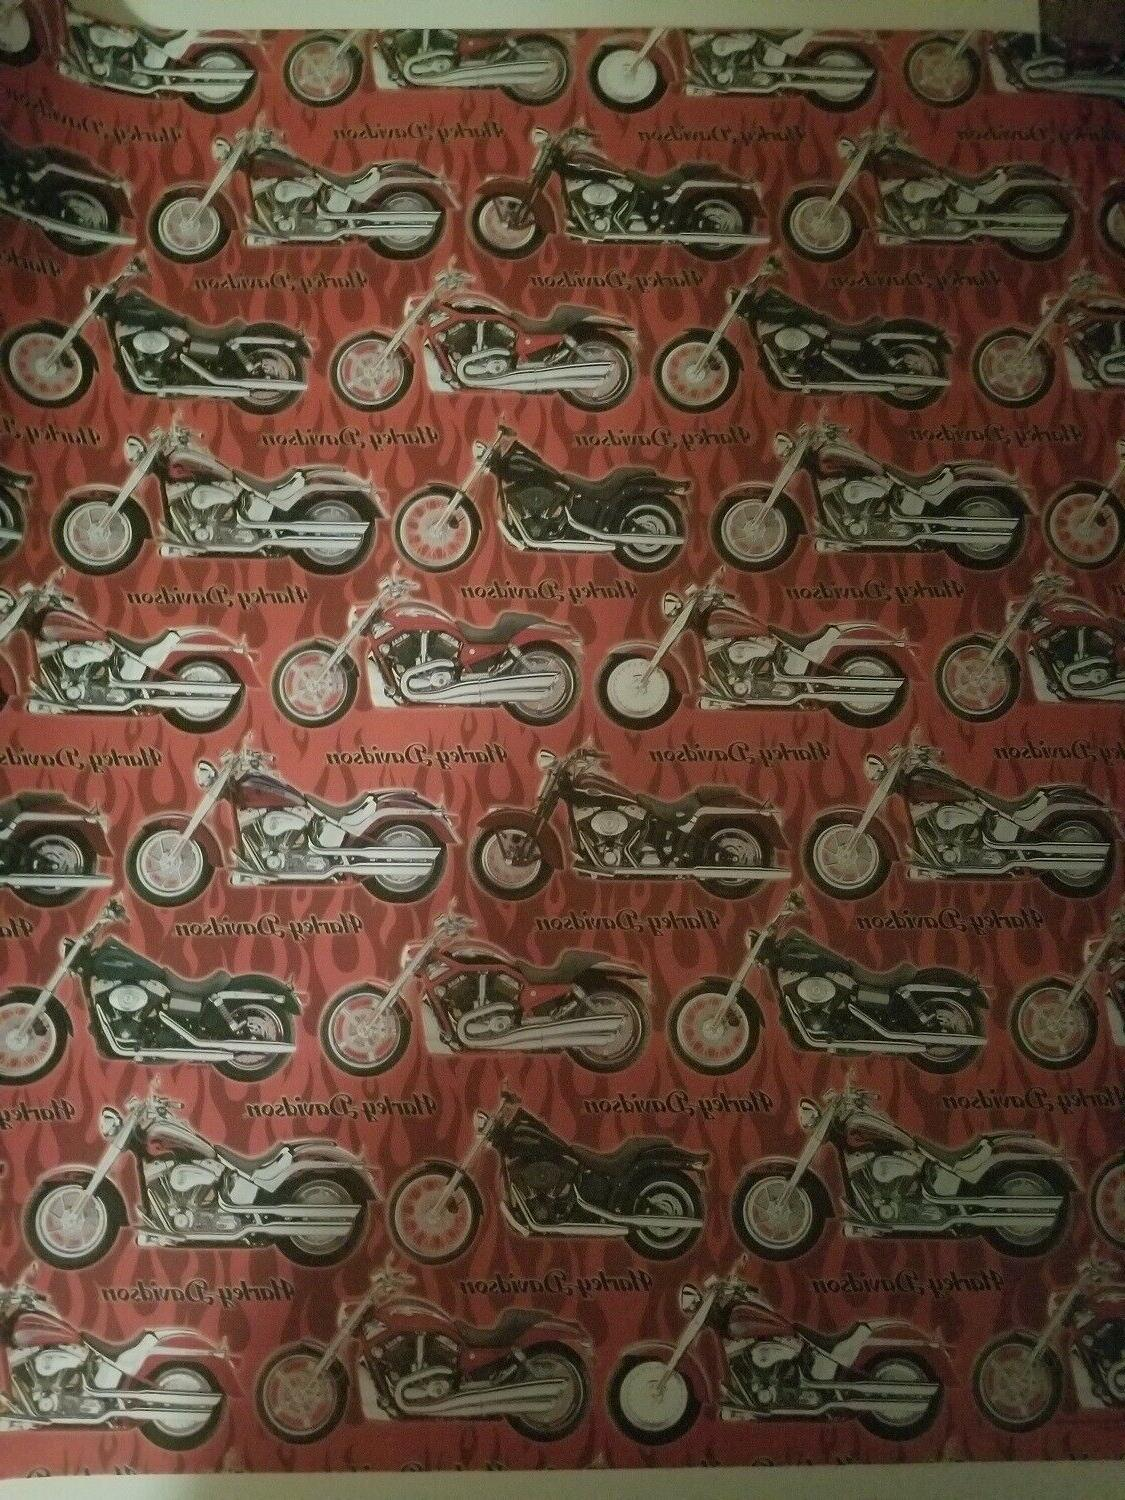 Harley Wrapping Paper Bikes 32 SQ FT